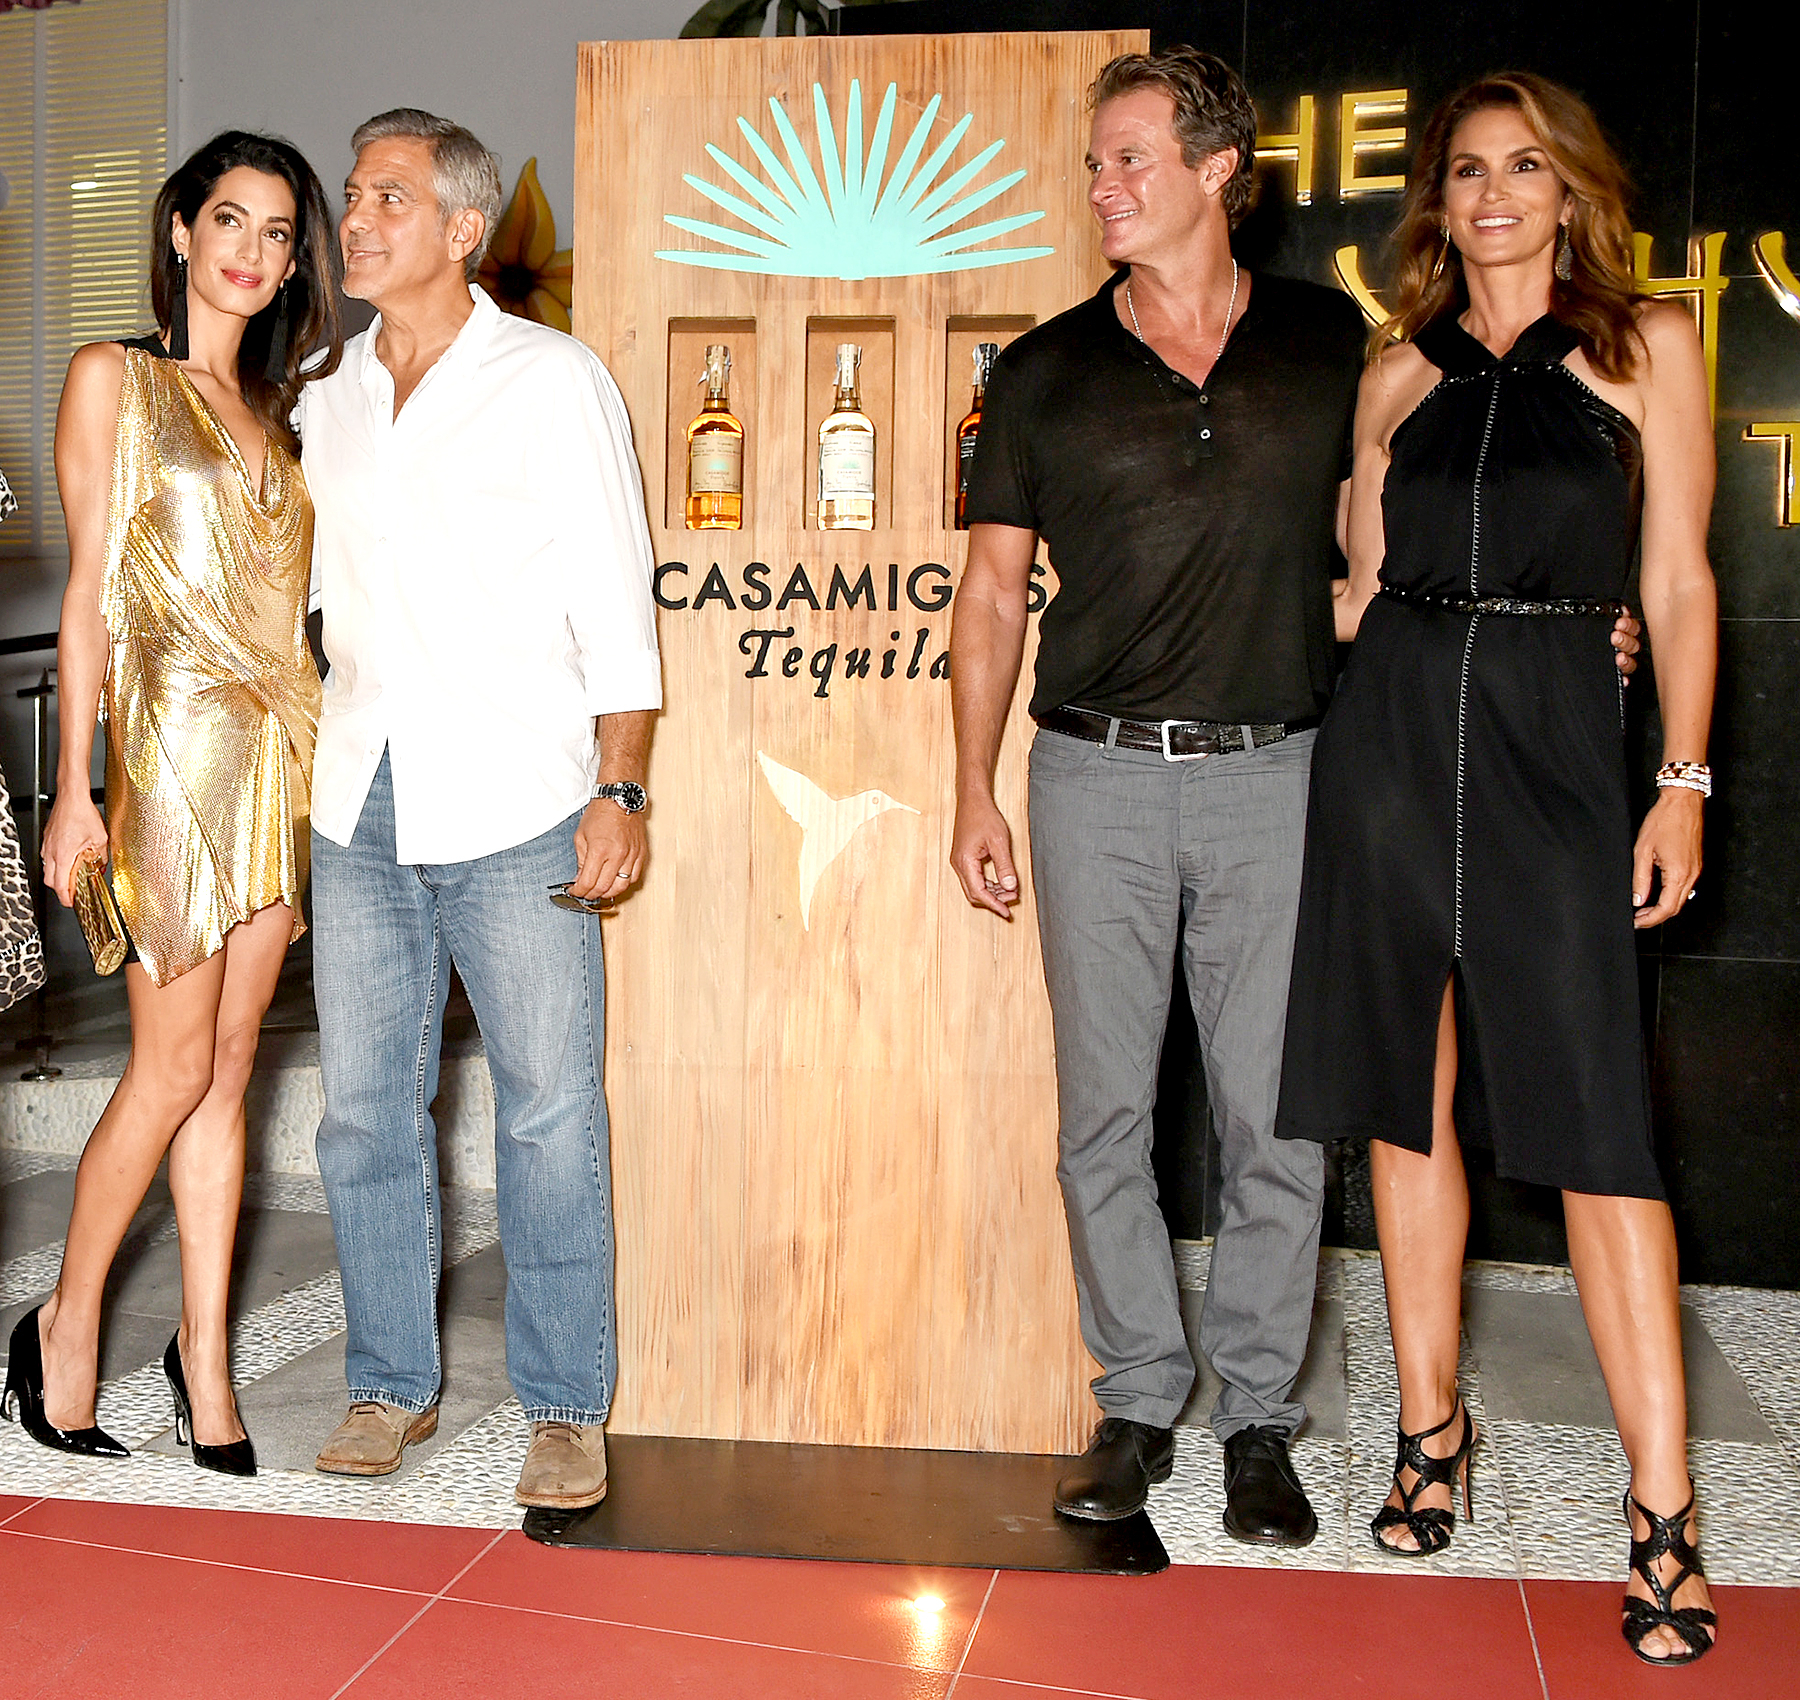 George Clooney Rande Gerber Sell Their Two Casamigos